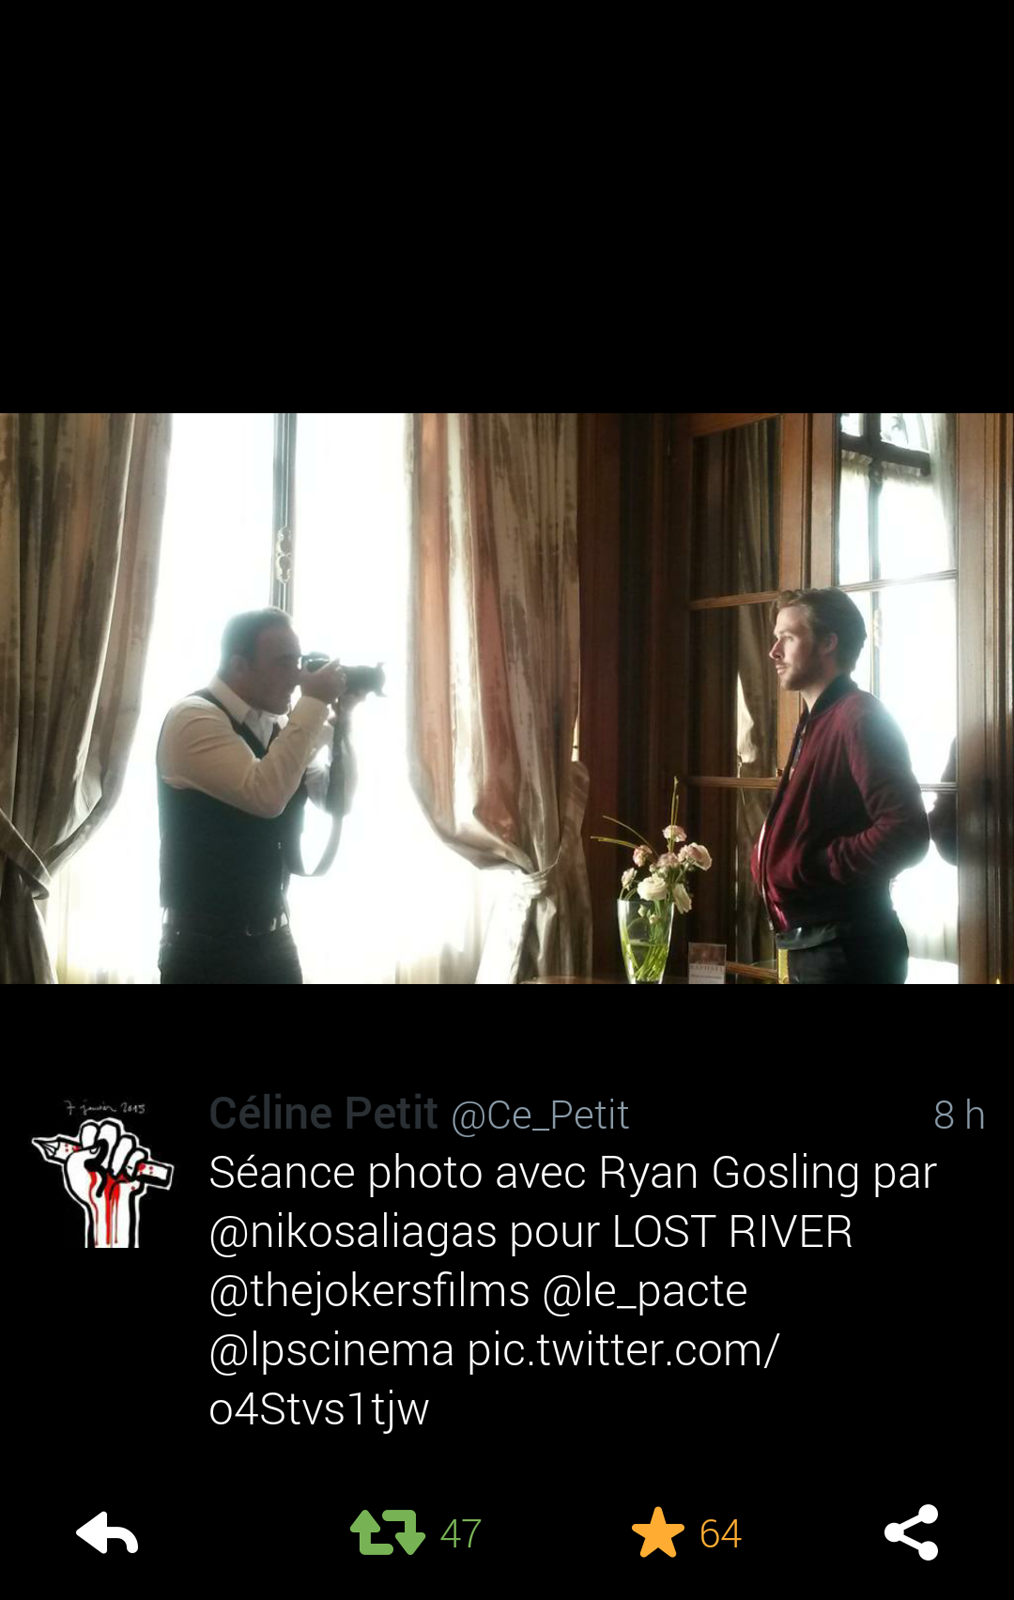 Séance photo Ryan Gosling par Nikos Aliagas pour Lost River premier film promo France Europe 1 photo twiter by Céline Petit